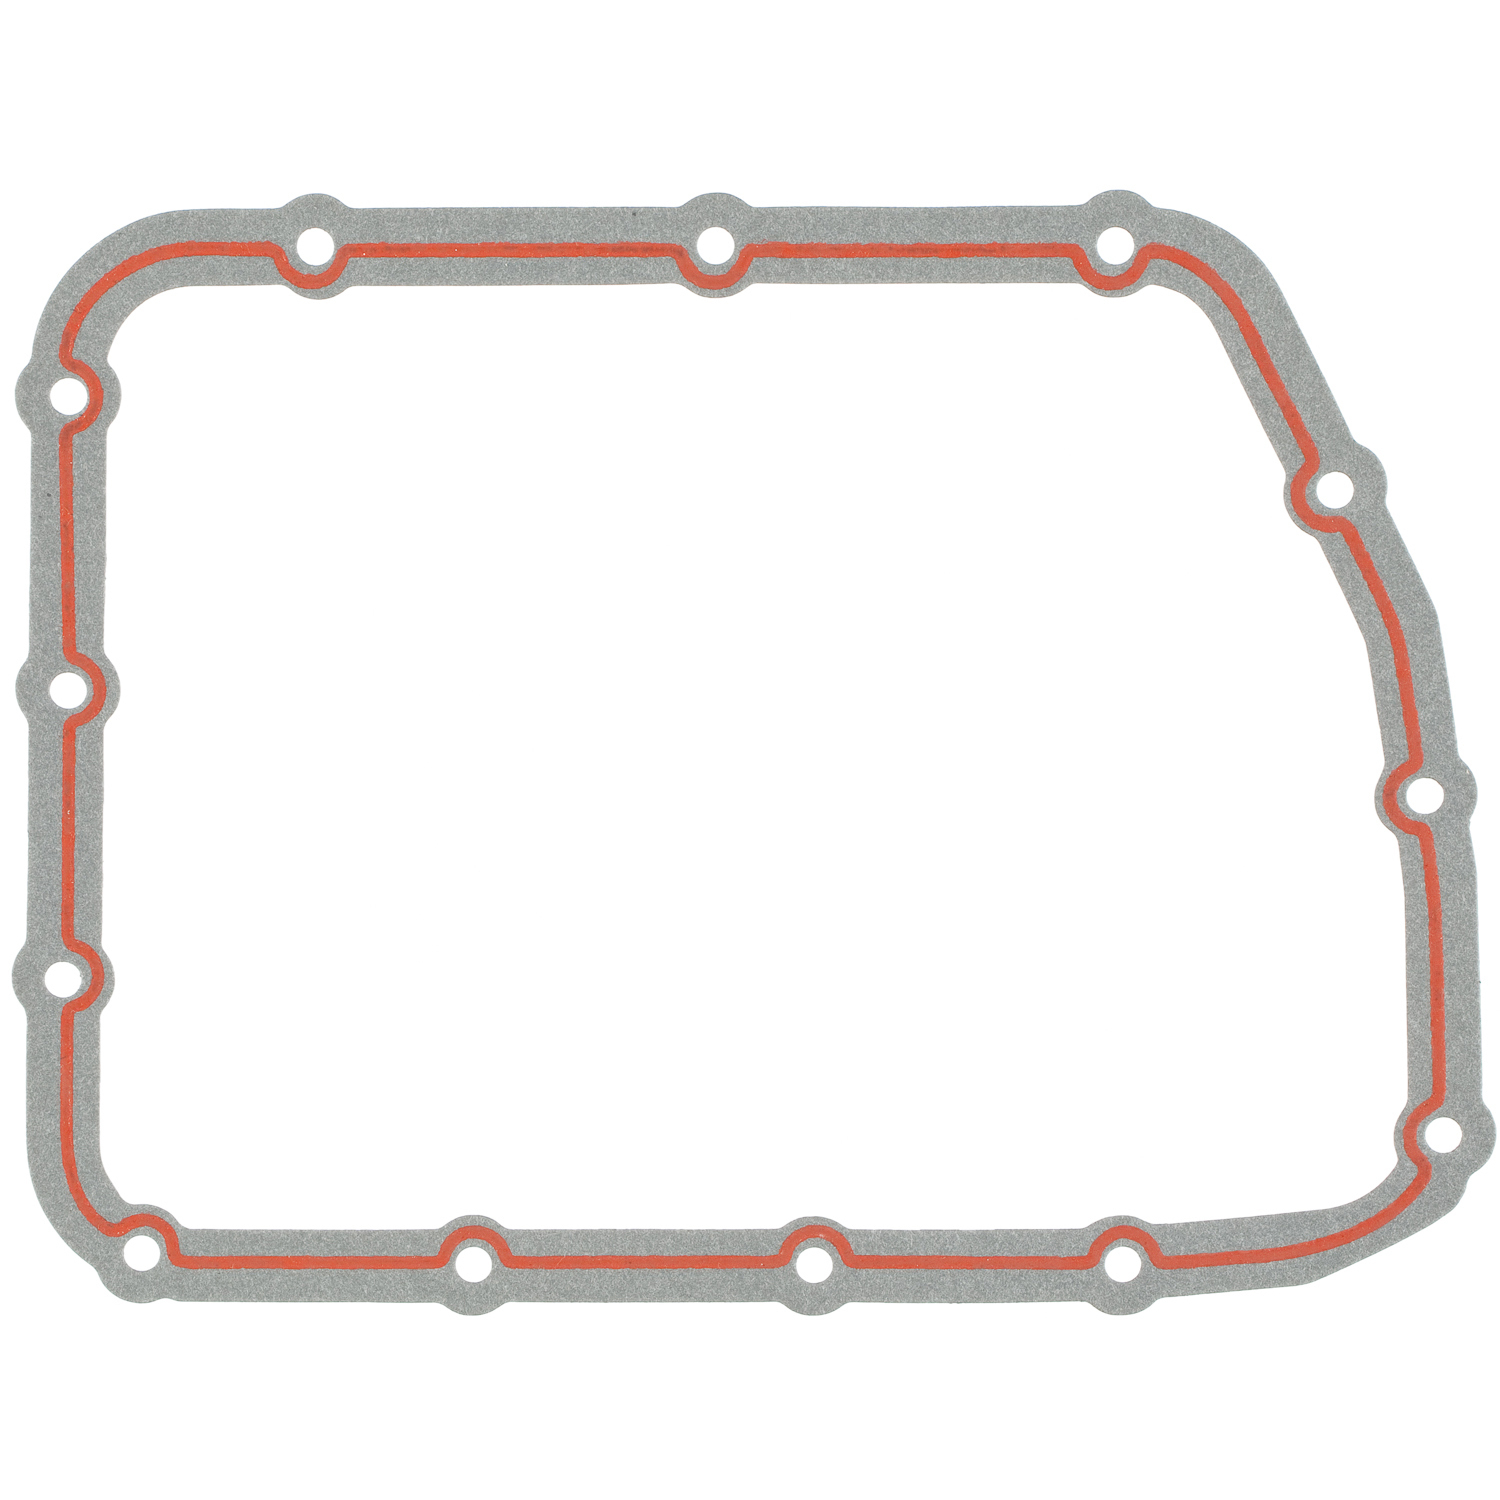 Automatic Transmission Valve Body Cover Gasket